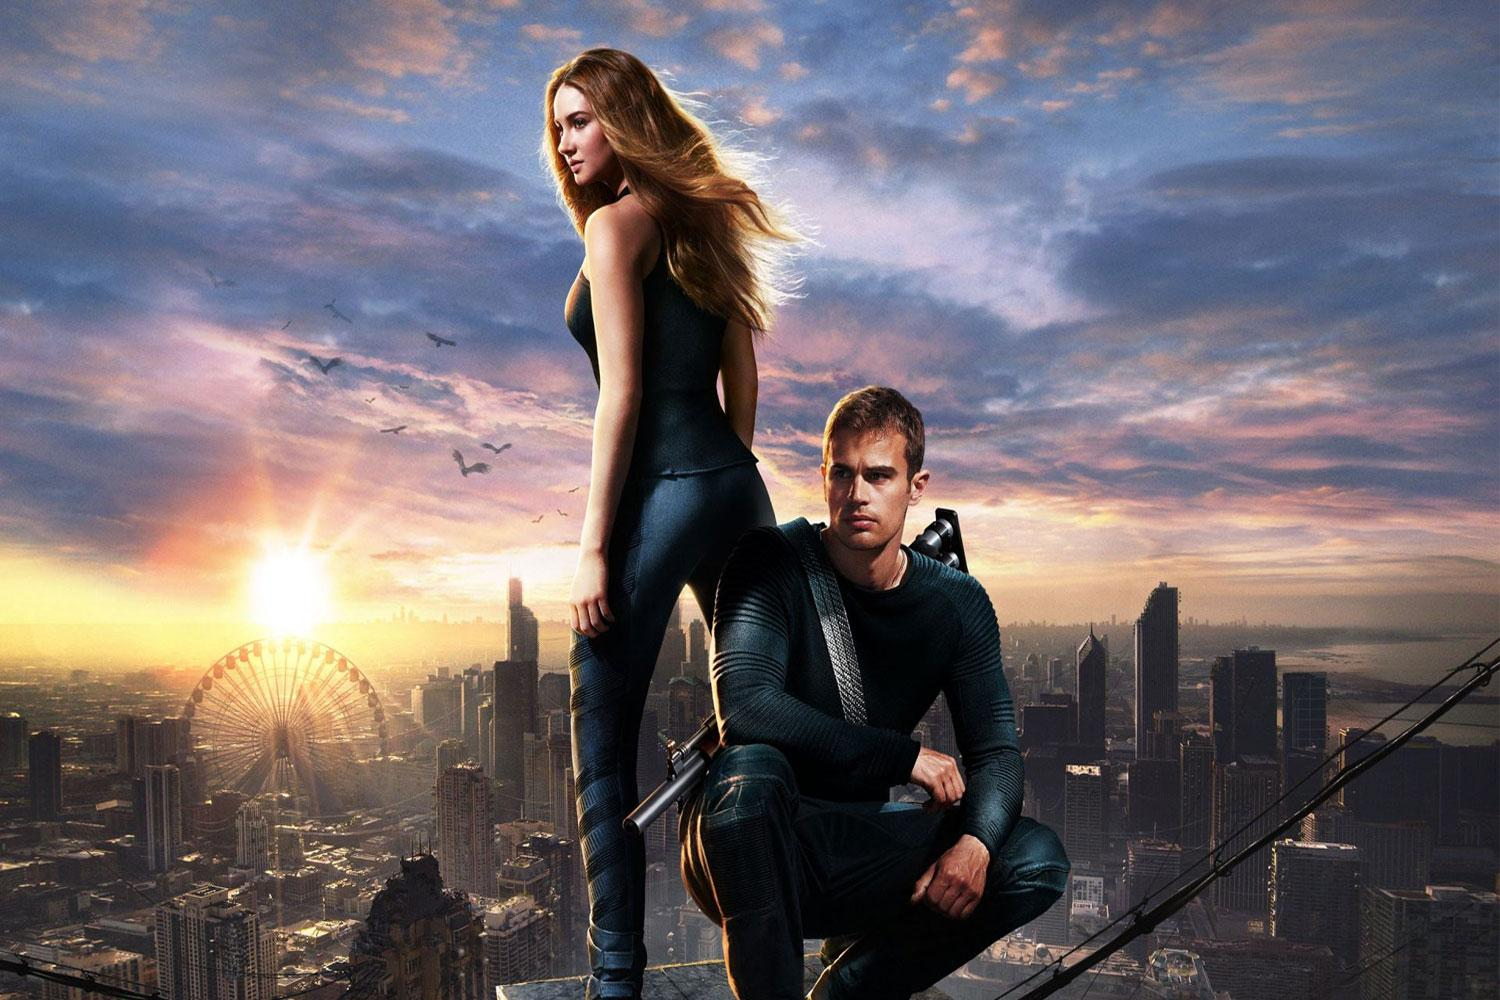 The Final Films In The Divergent Franchise Are Now Titled